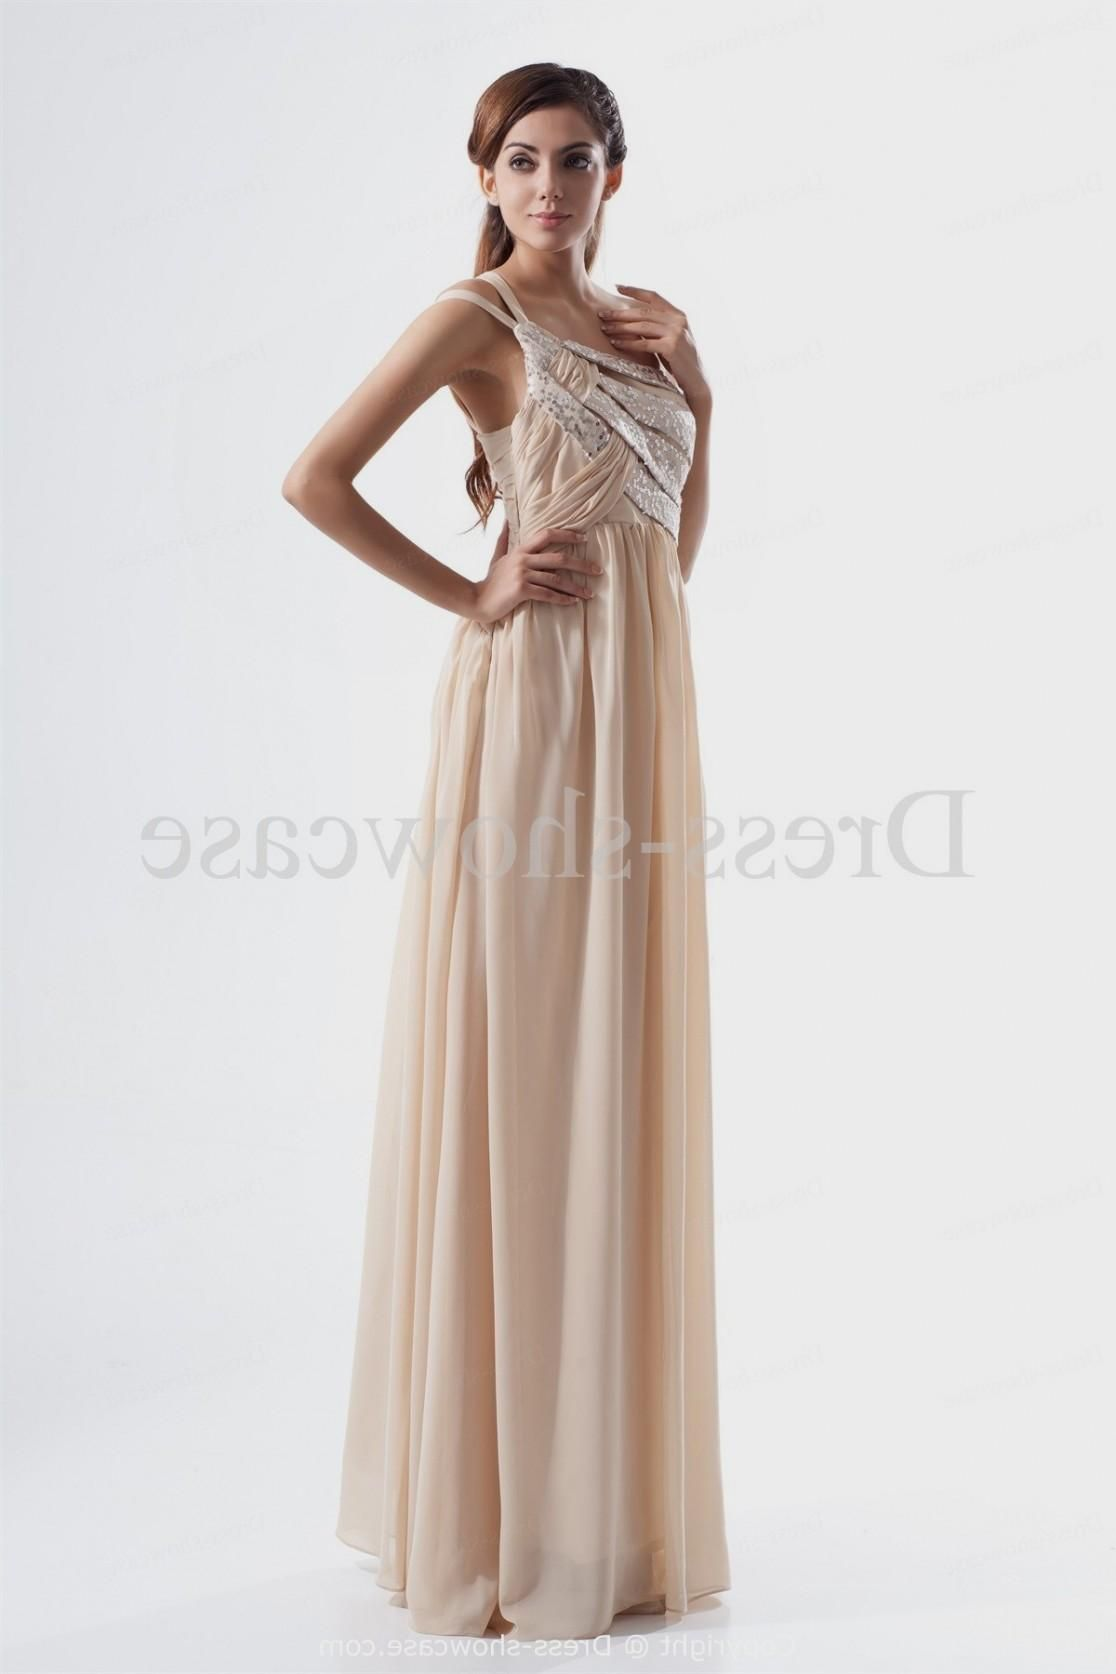 beige-pleats-one-shoulder-sleeveless-sheath-column-prom-dress.jpg (1116×1674)